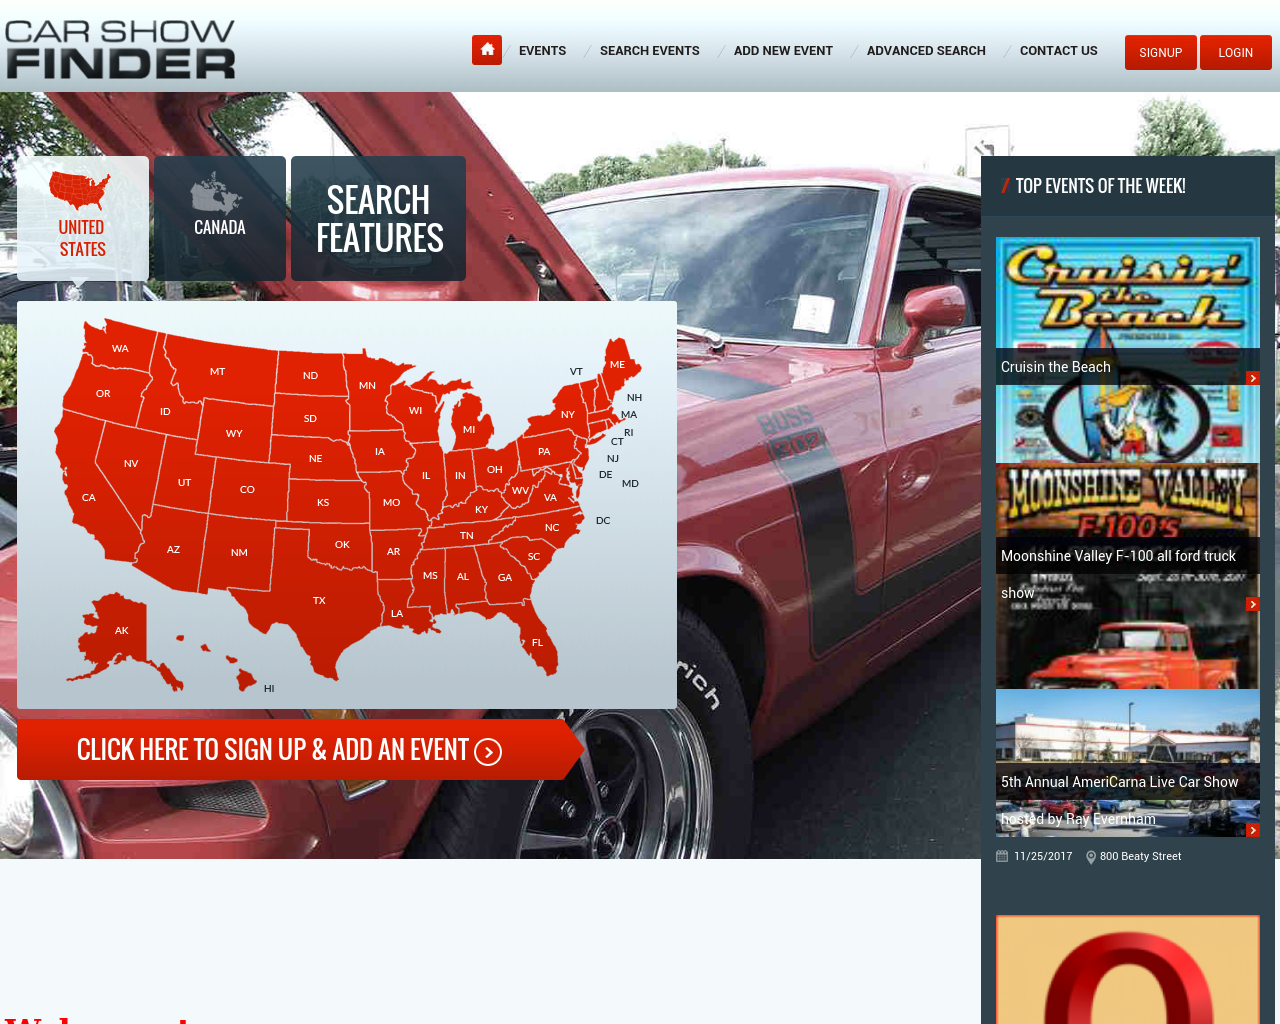 Car Show Finder Advertising Mediakits Reviews Pricing Traffic - Car show finder